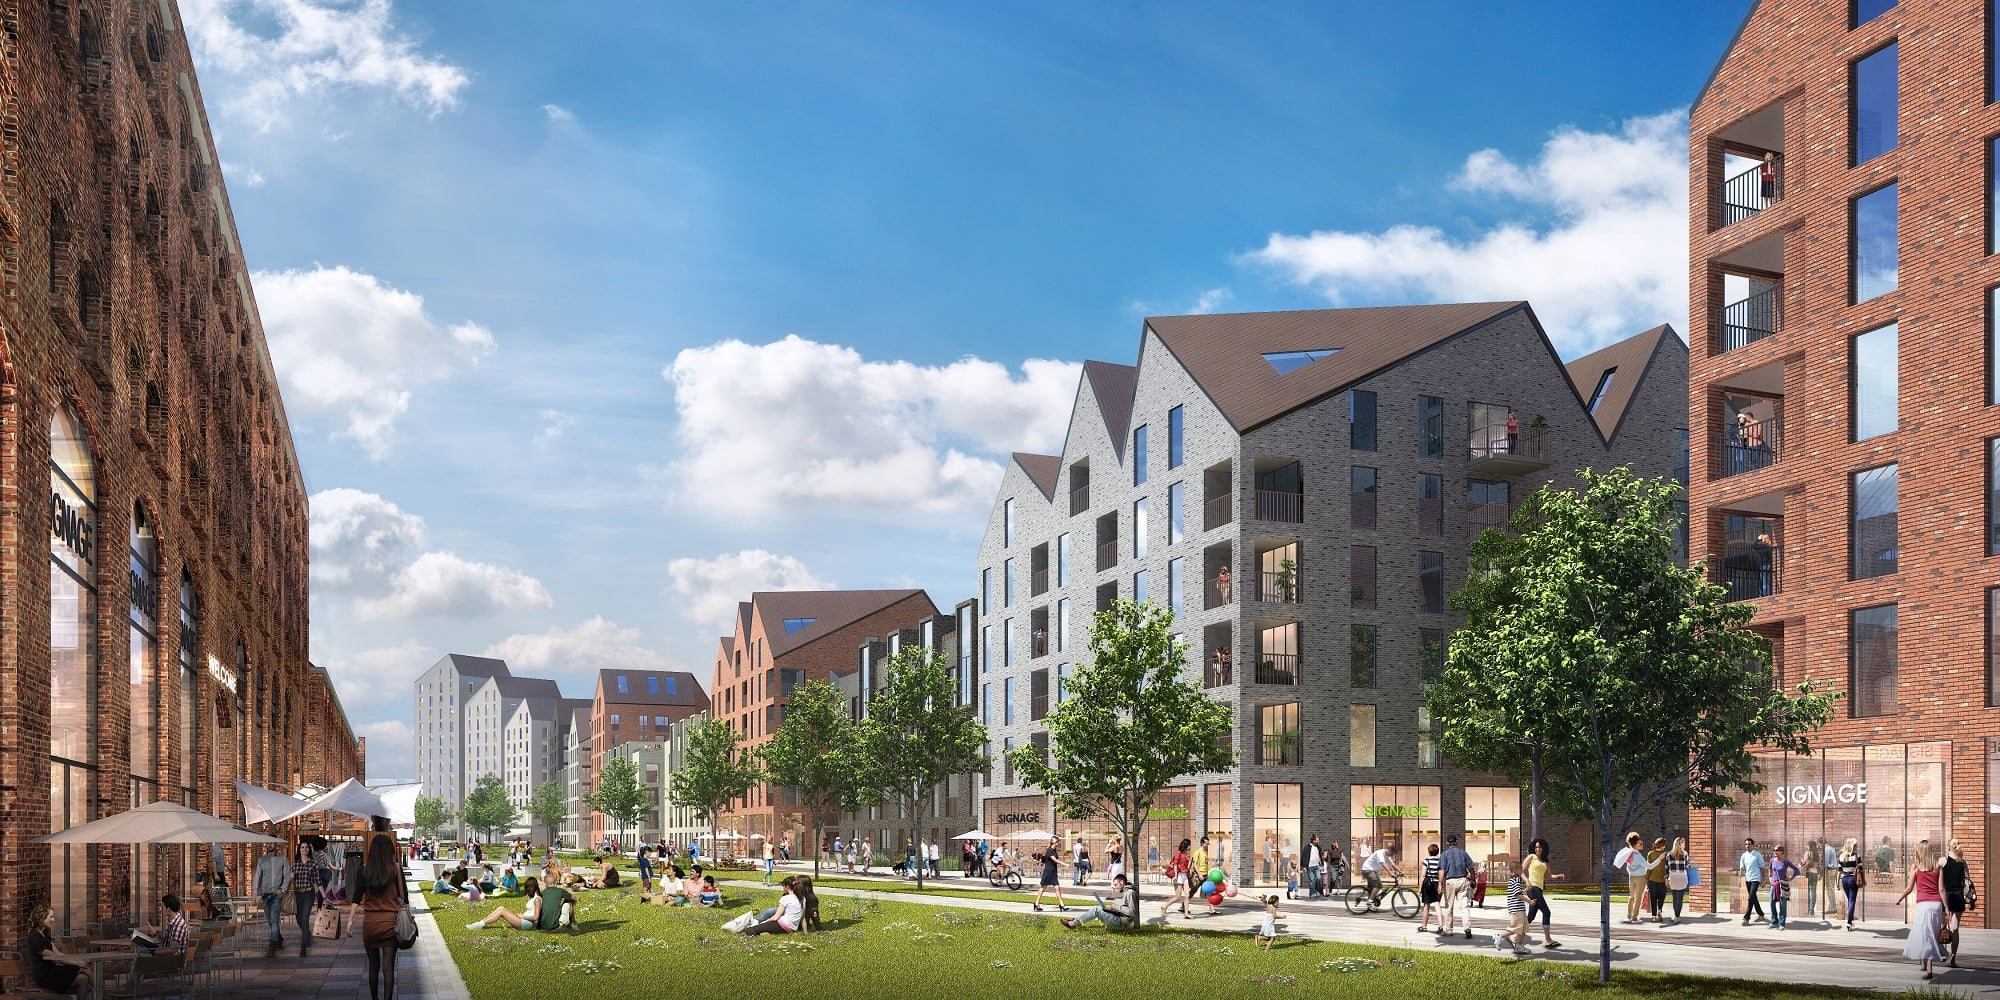 Conygar has said that it is planning on submitting a detailed planning application for its Nottingham site in the next few months